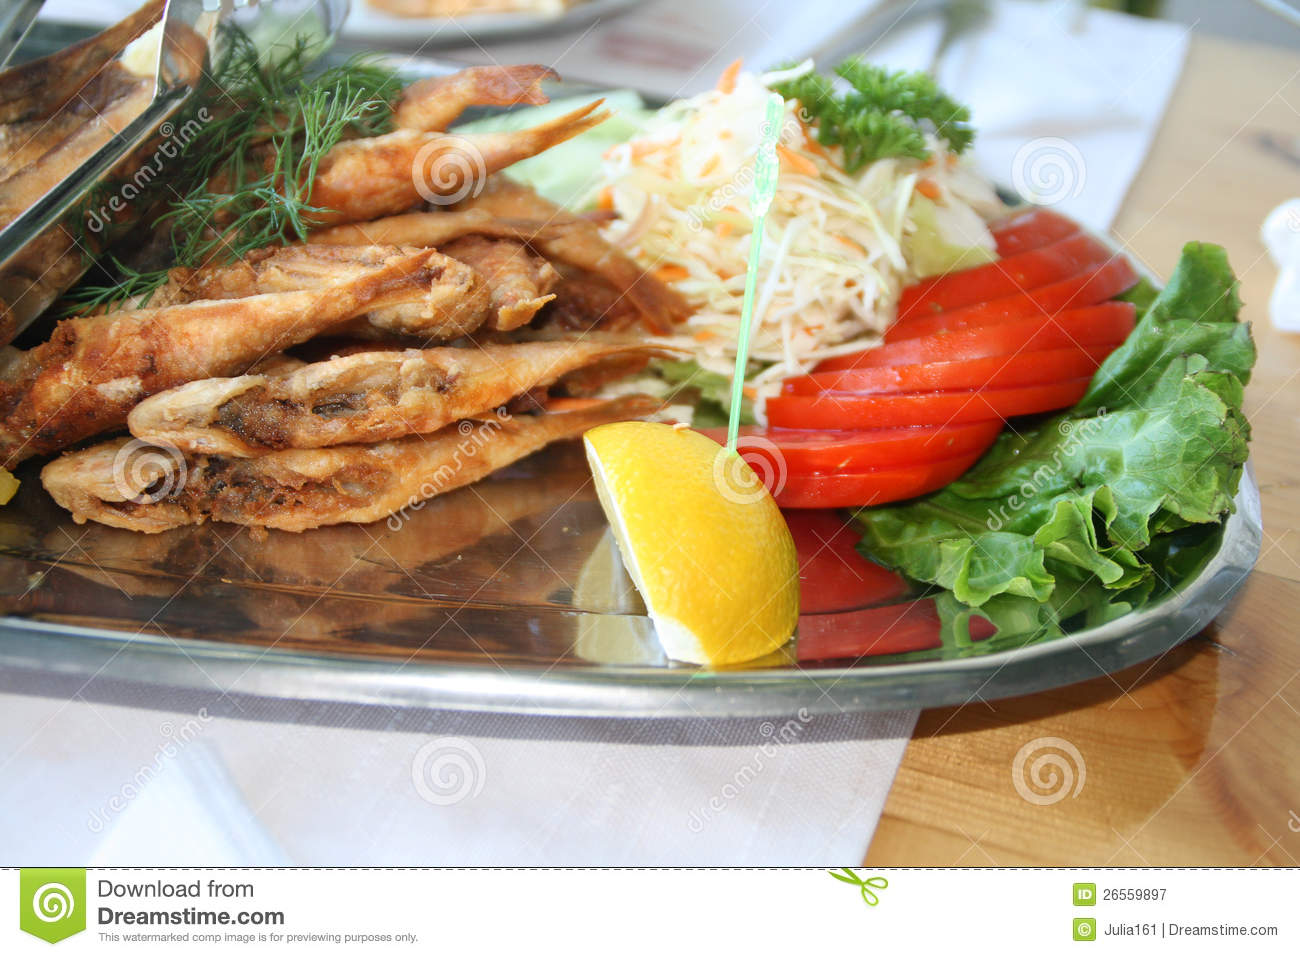 Fried surmullet fish with vegetables royalty free stock for Fish with vegetables